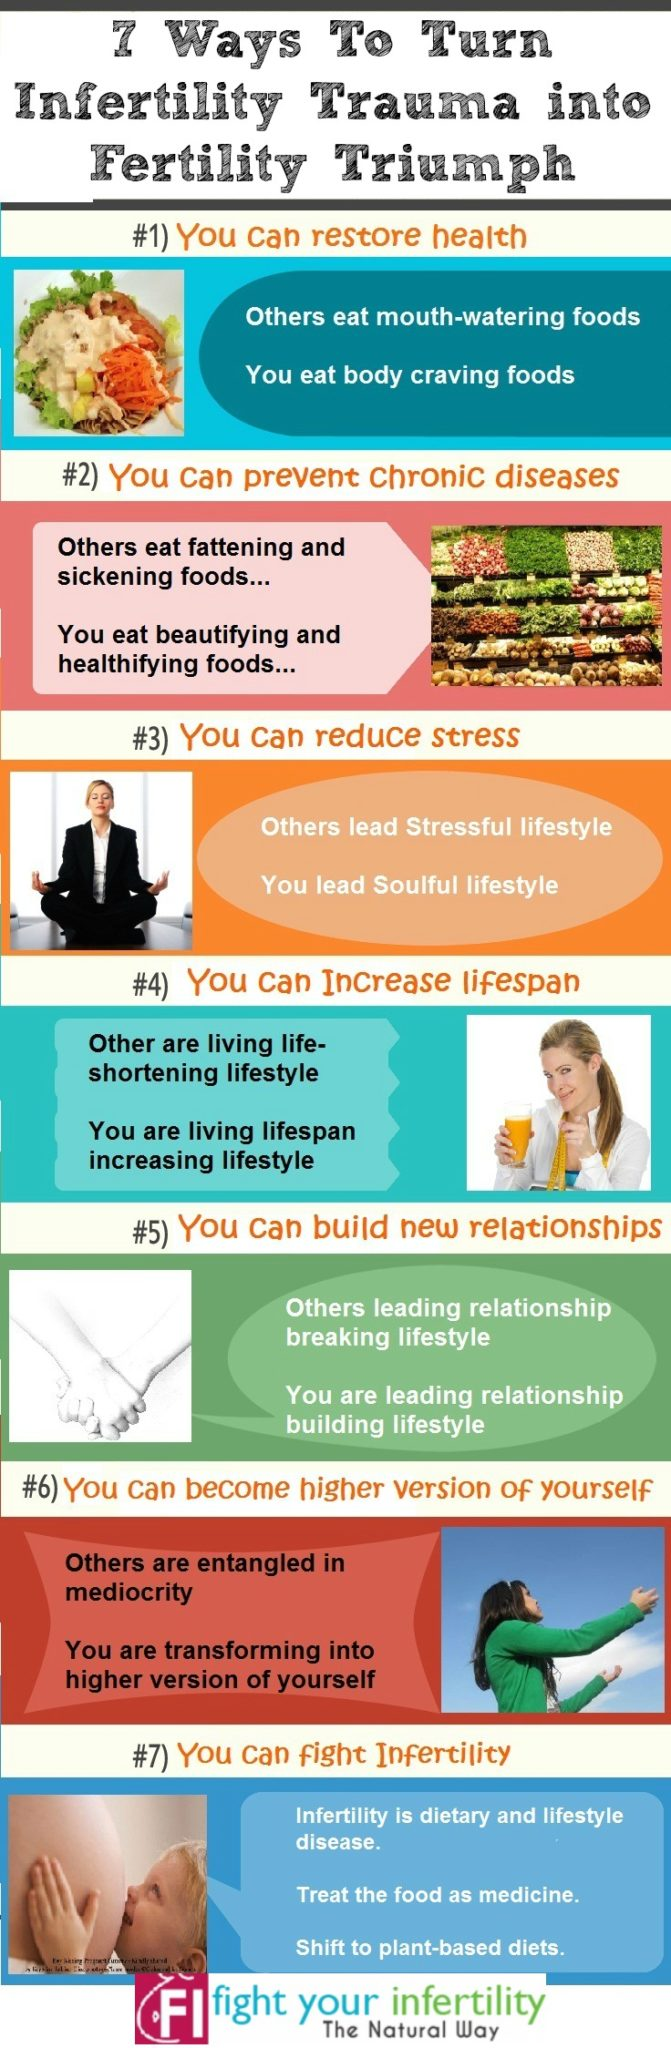 how to reduce stress, reduce stress, infertility, how to fight nfertility, fight infertility, stress